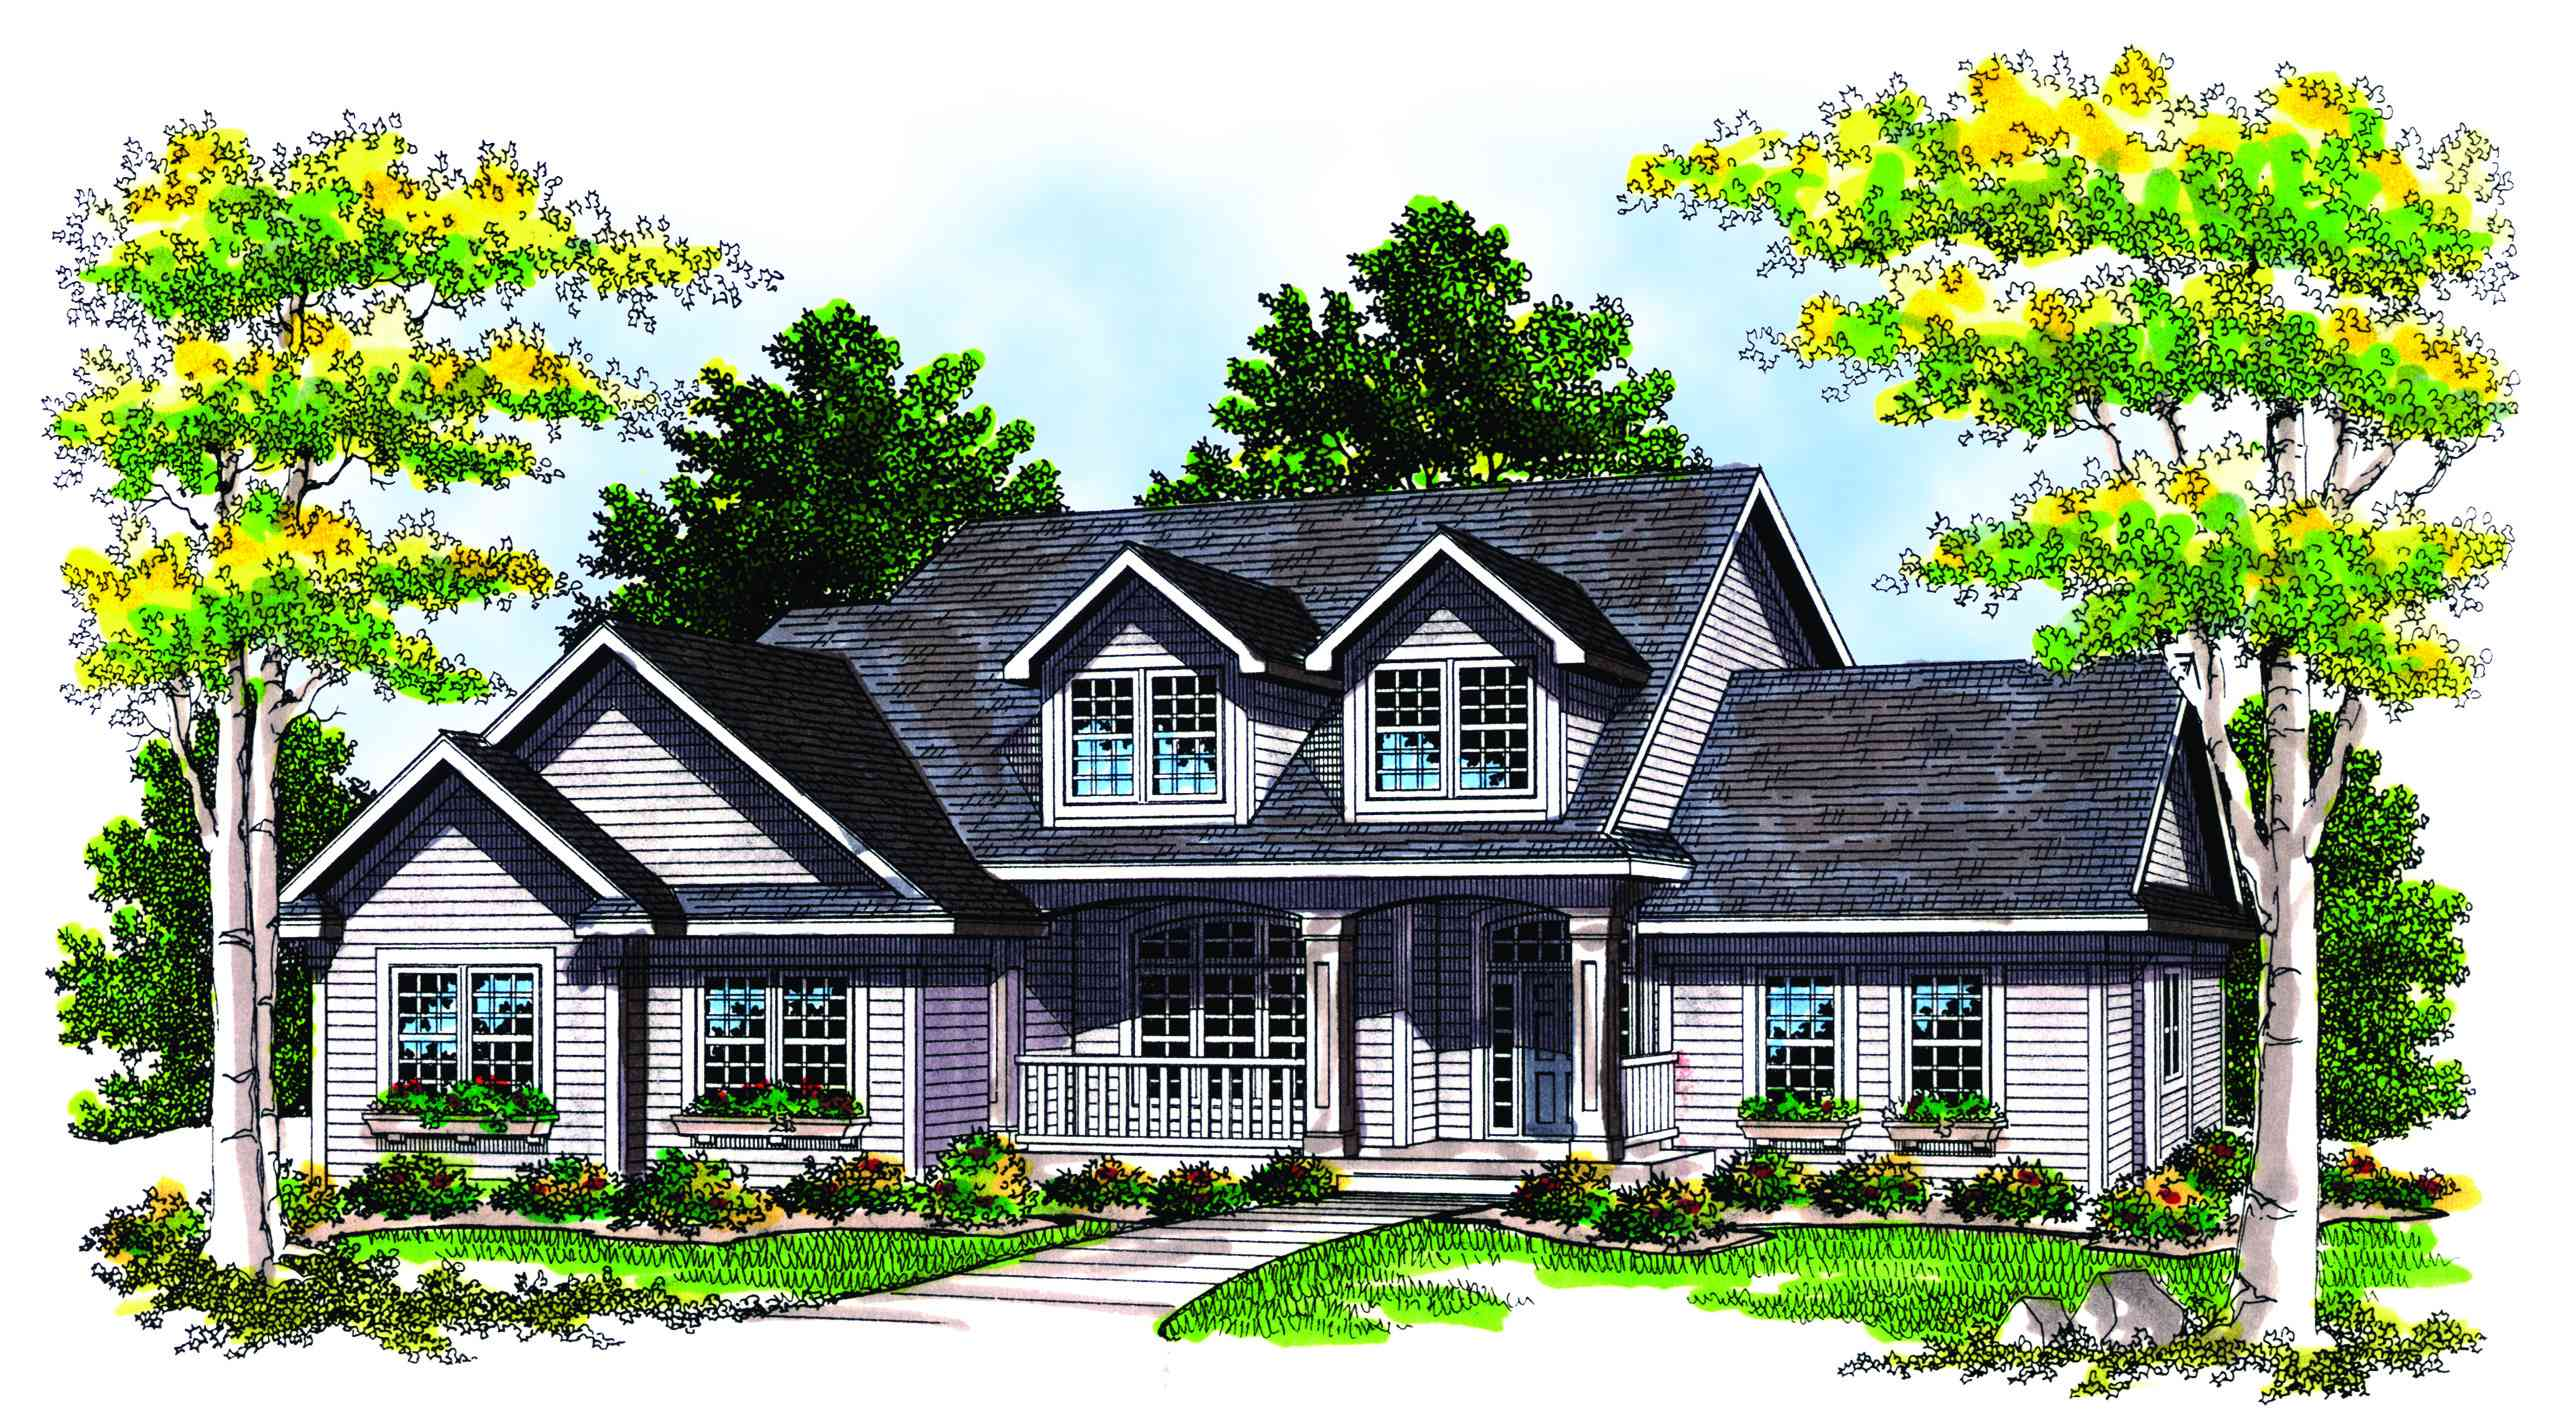 Two story plan with a side load garage 8902ah 1st for Architecturaldesigns com house plan 56364sm asp